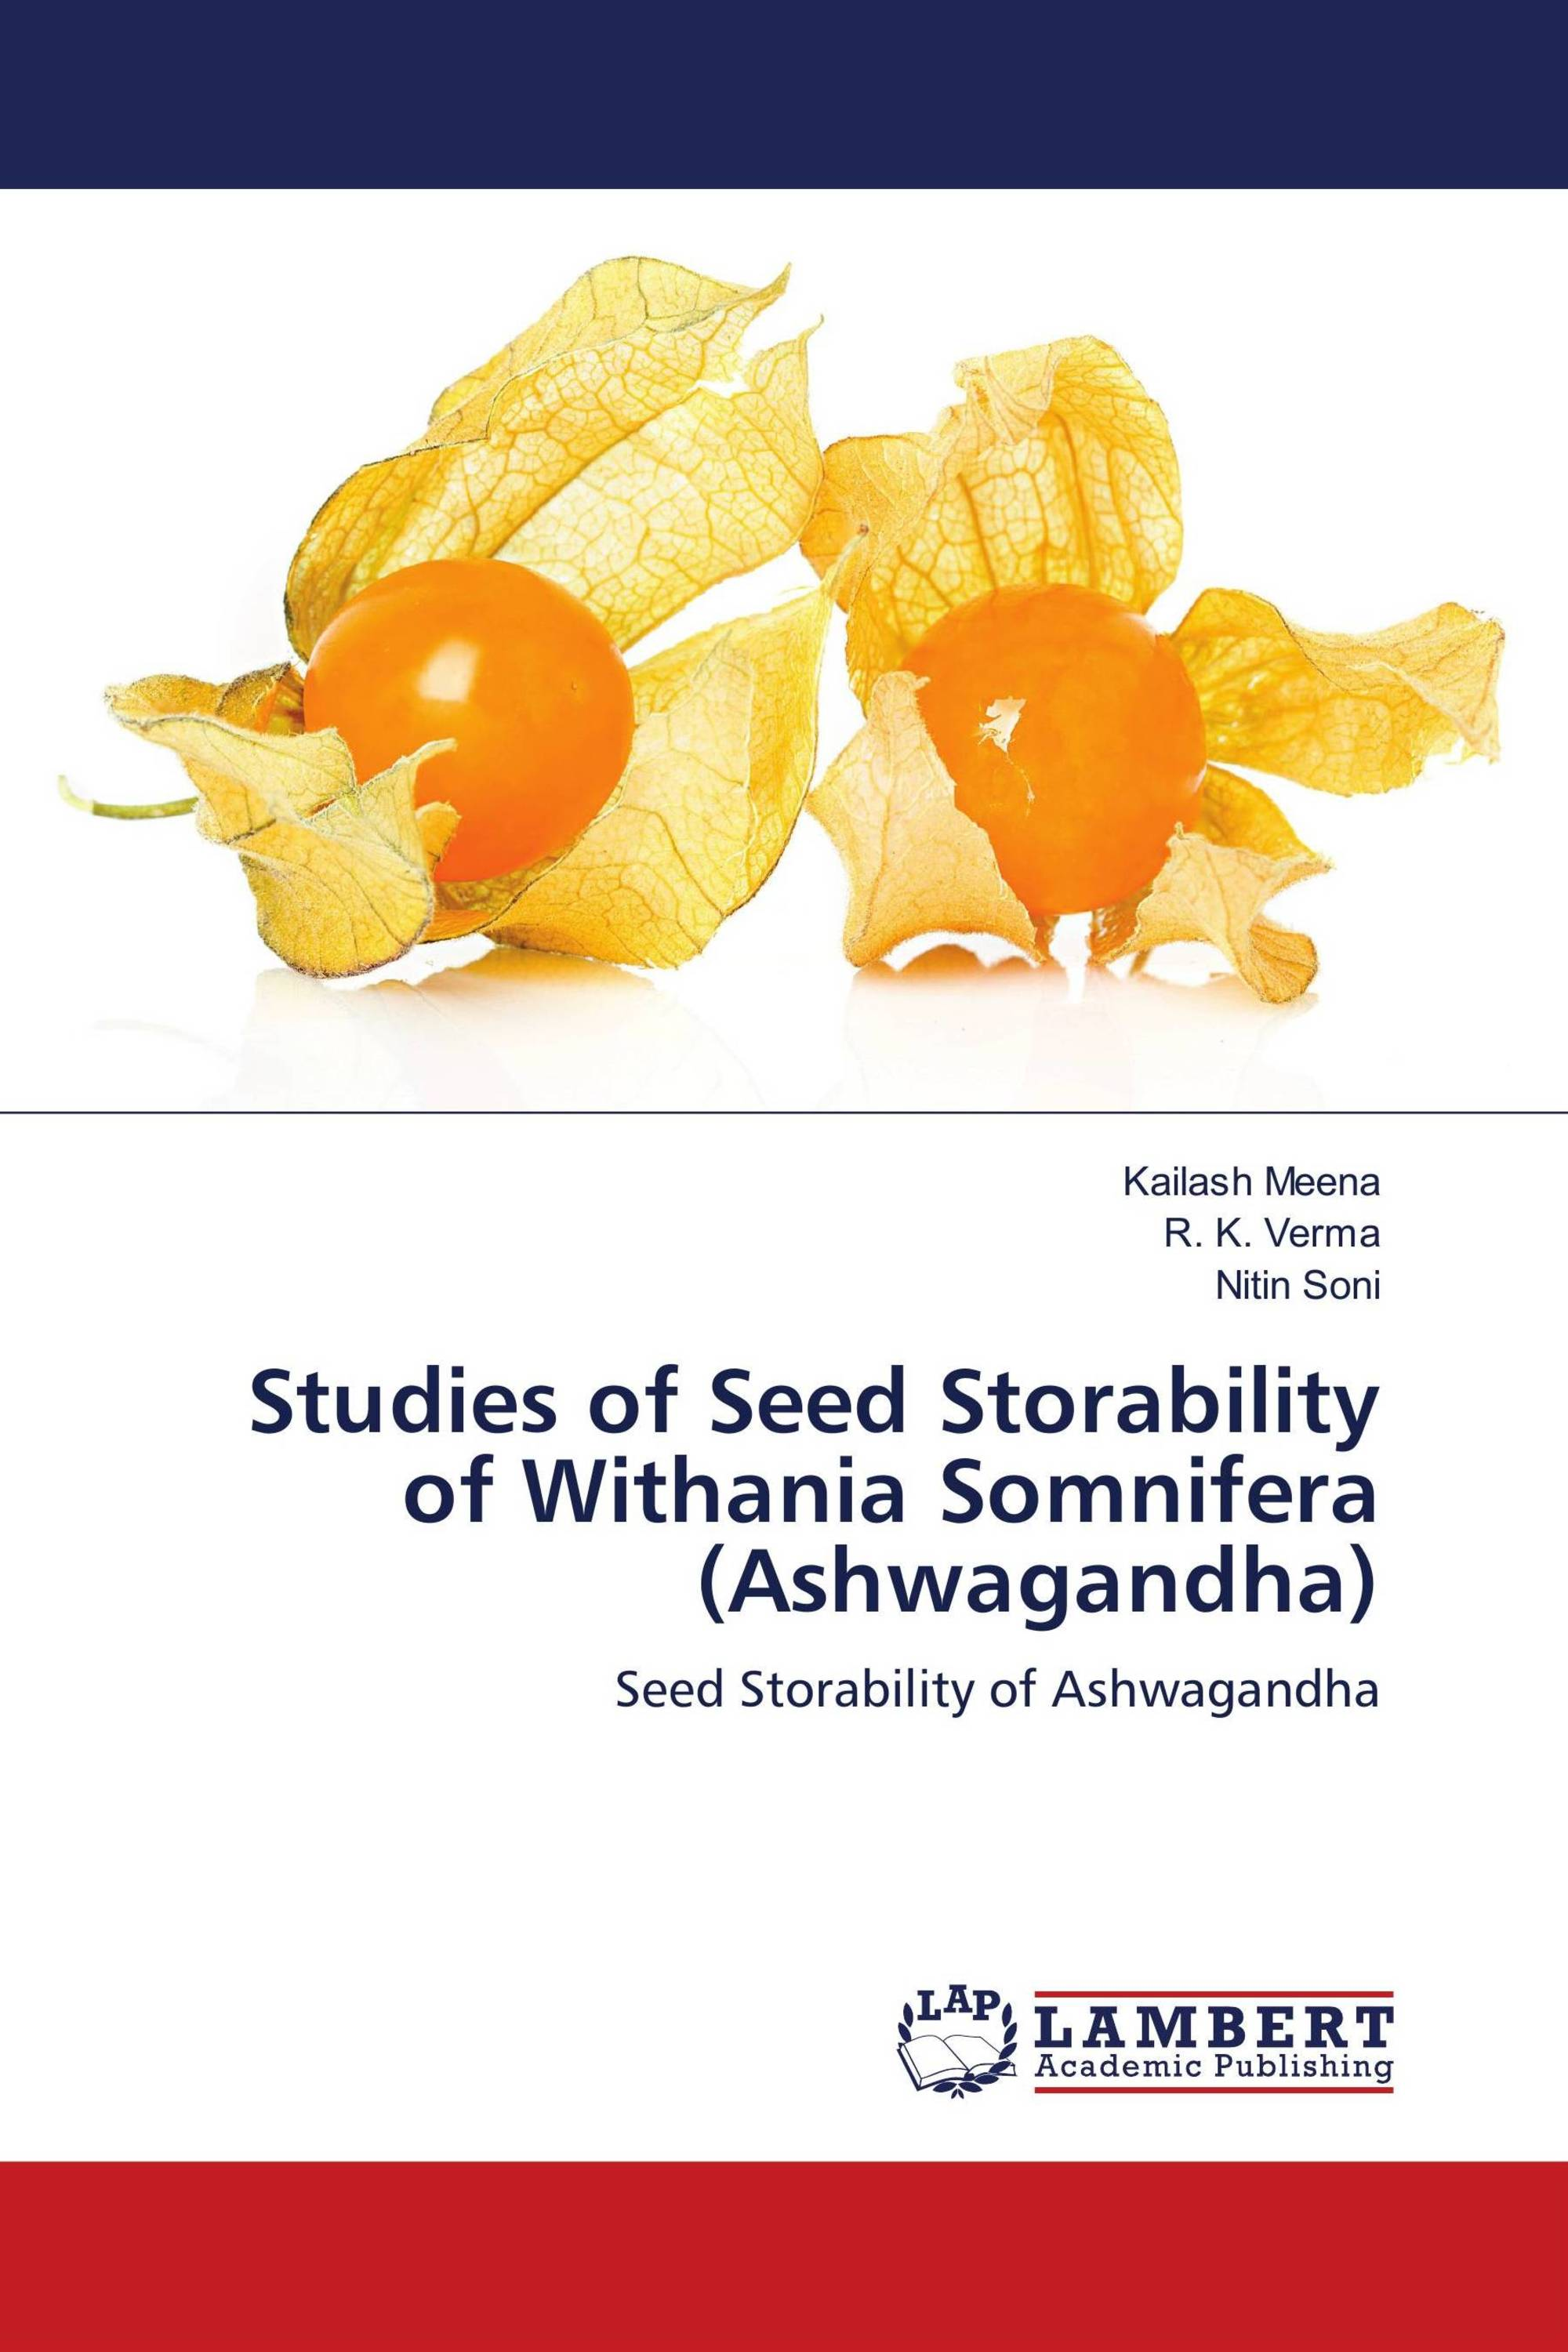 Studies of Seed Storability of Withania Somnifera